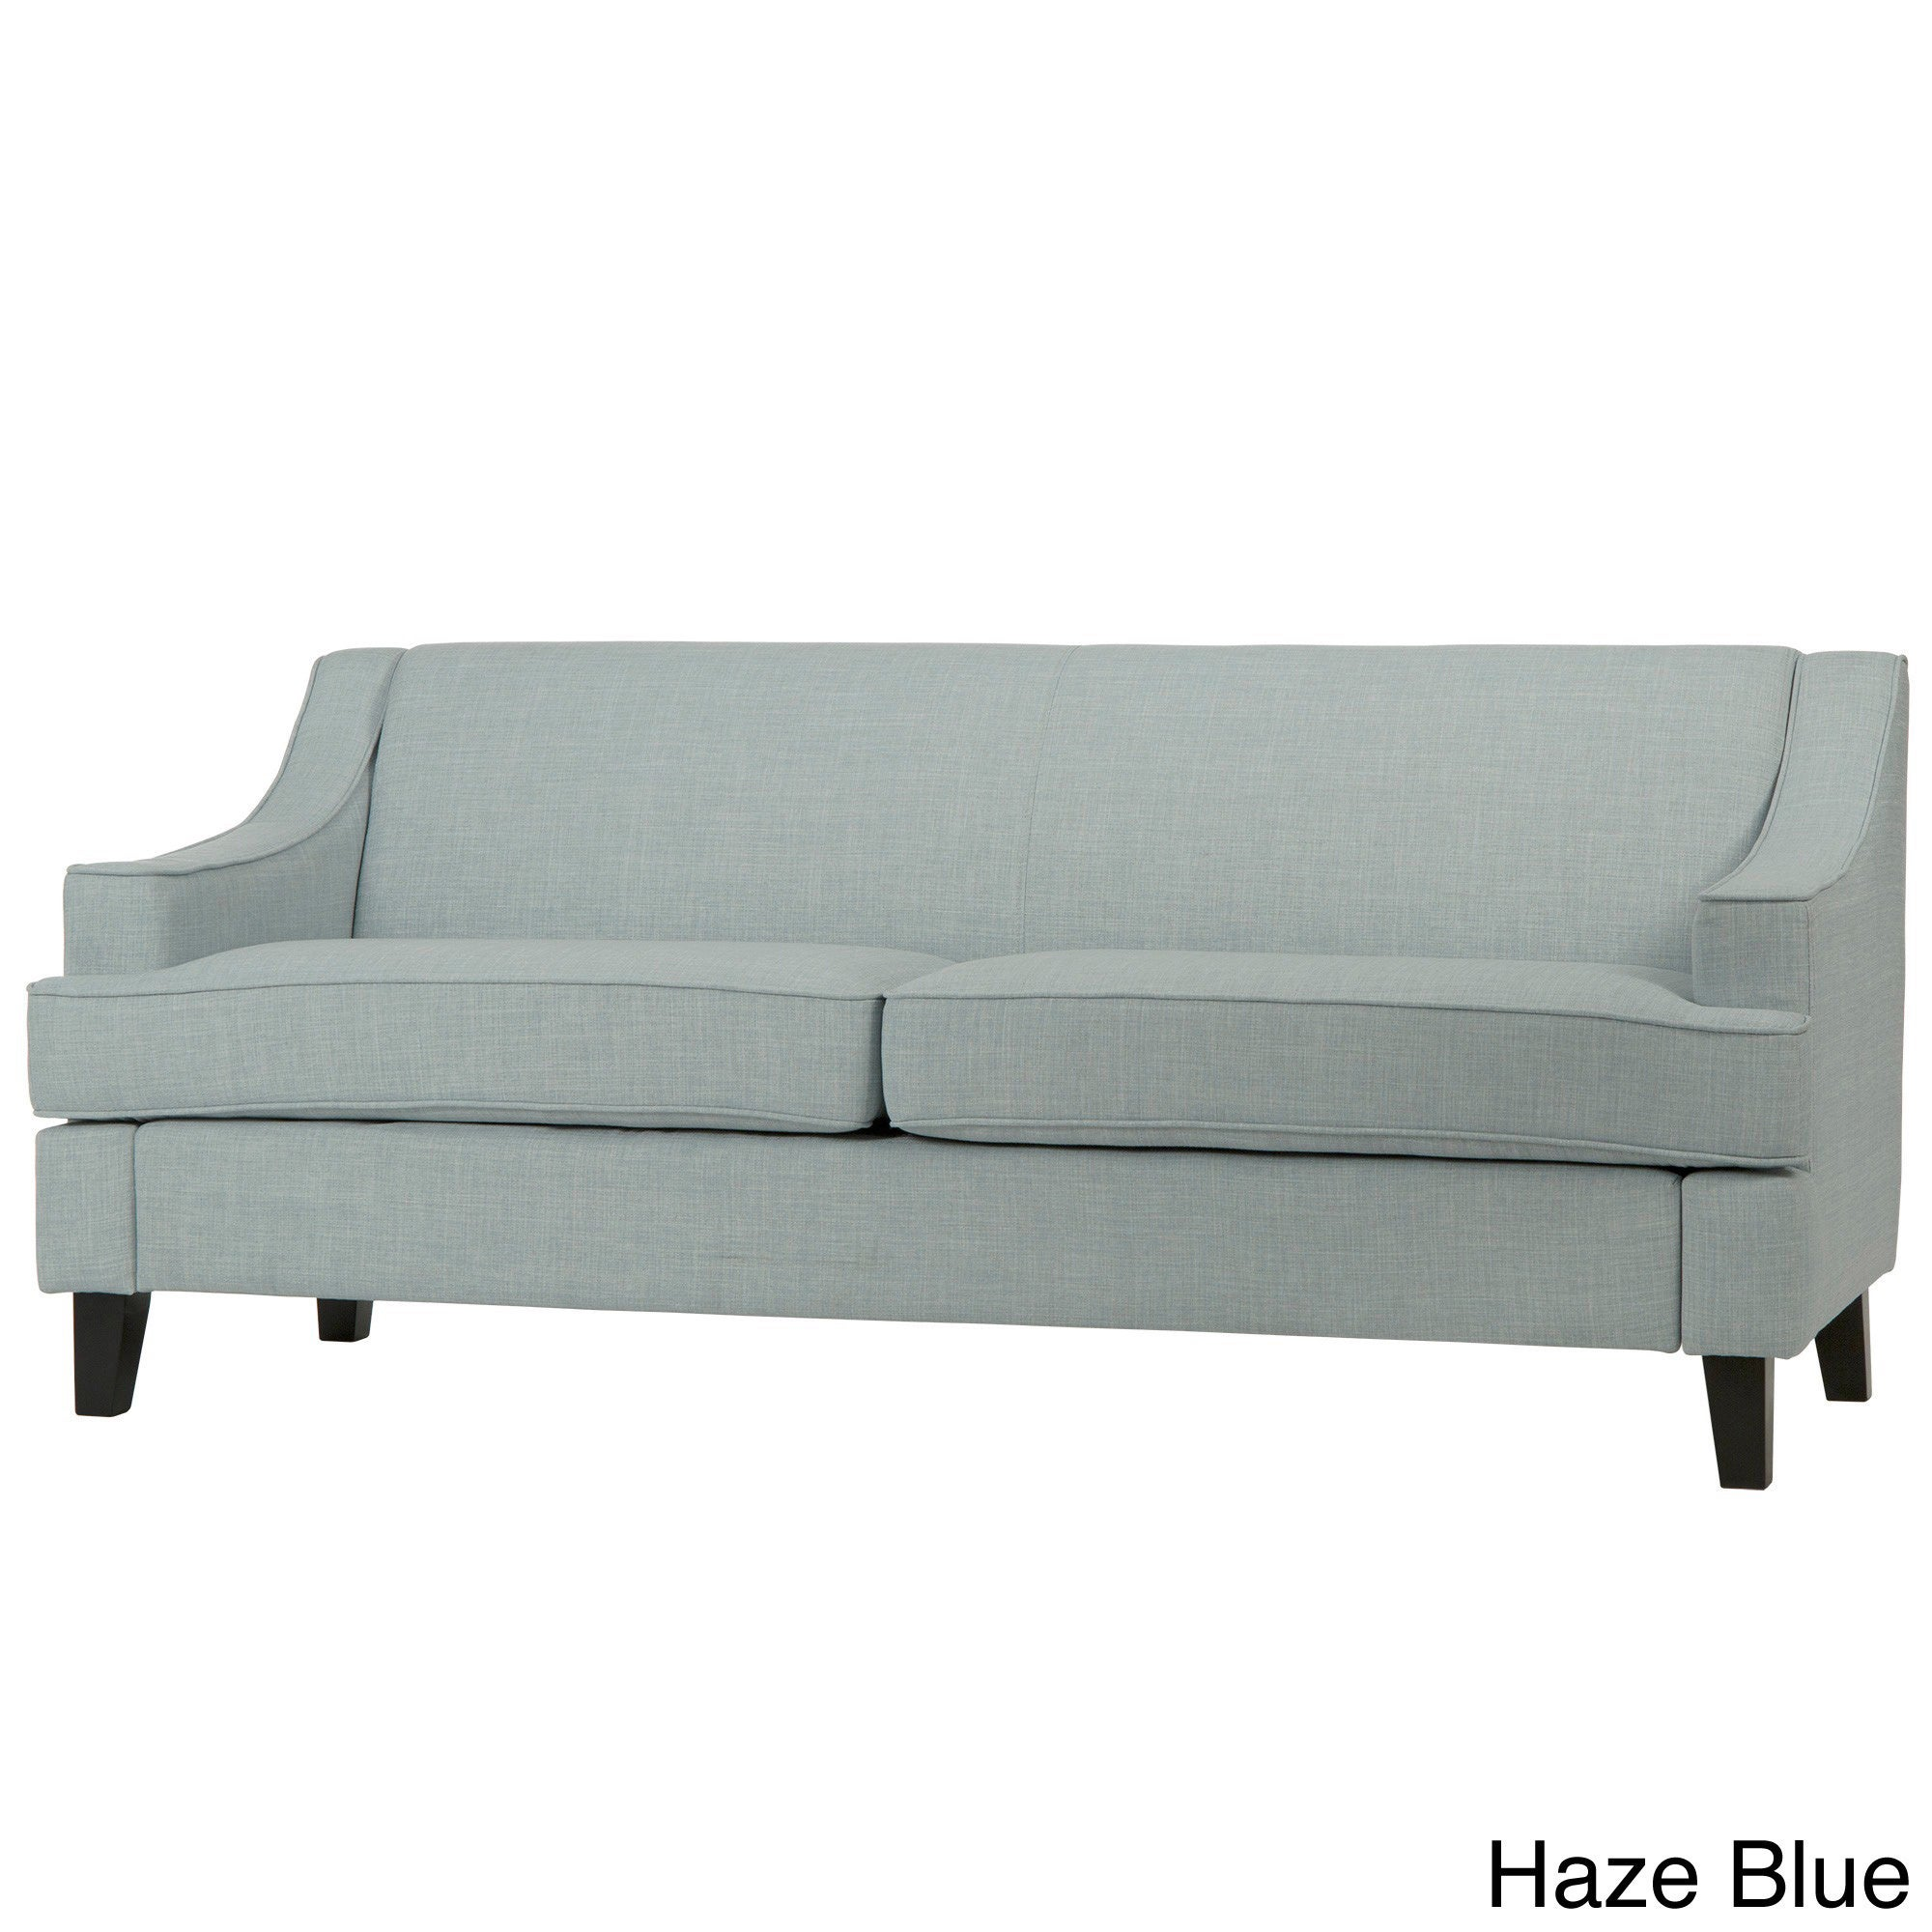 winslow concave arm modern sofa by inspire q bold  free shipping today overstockcom  . winslow concave arm modern sofa by inspire q bold  free shipping